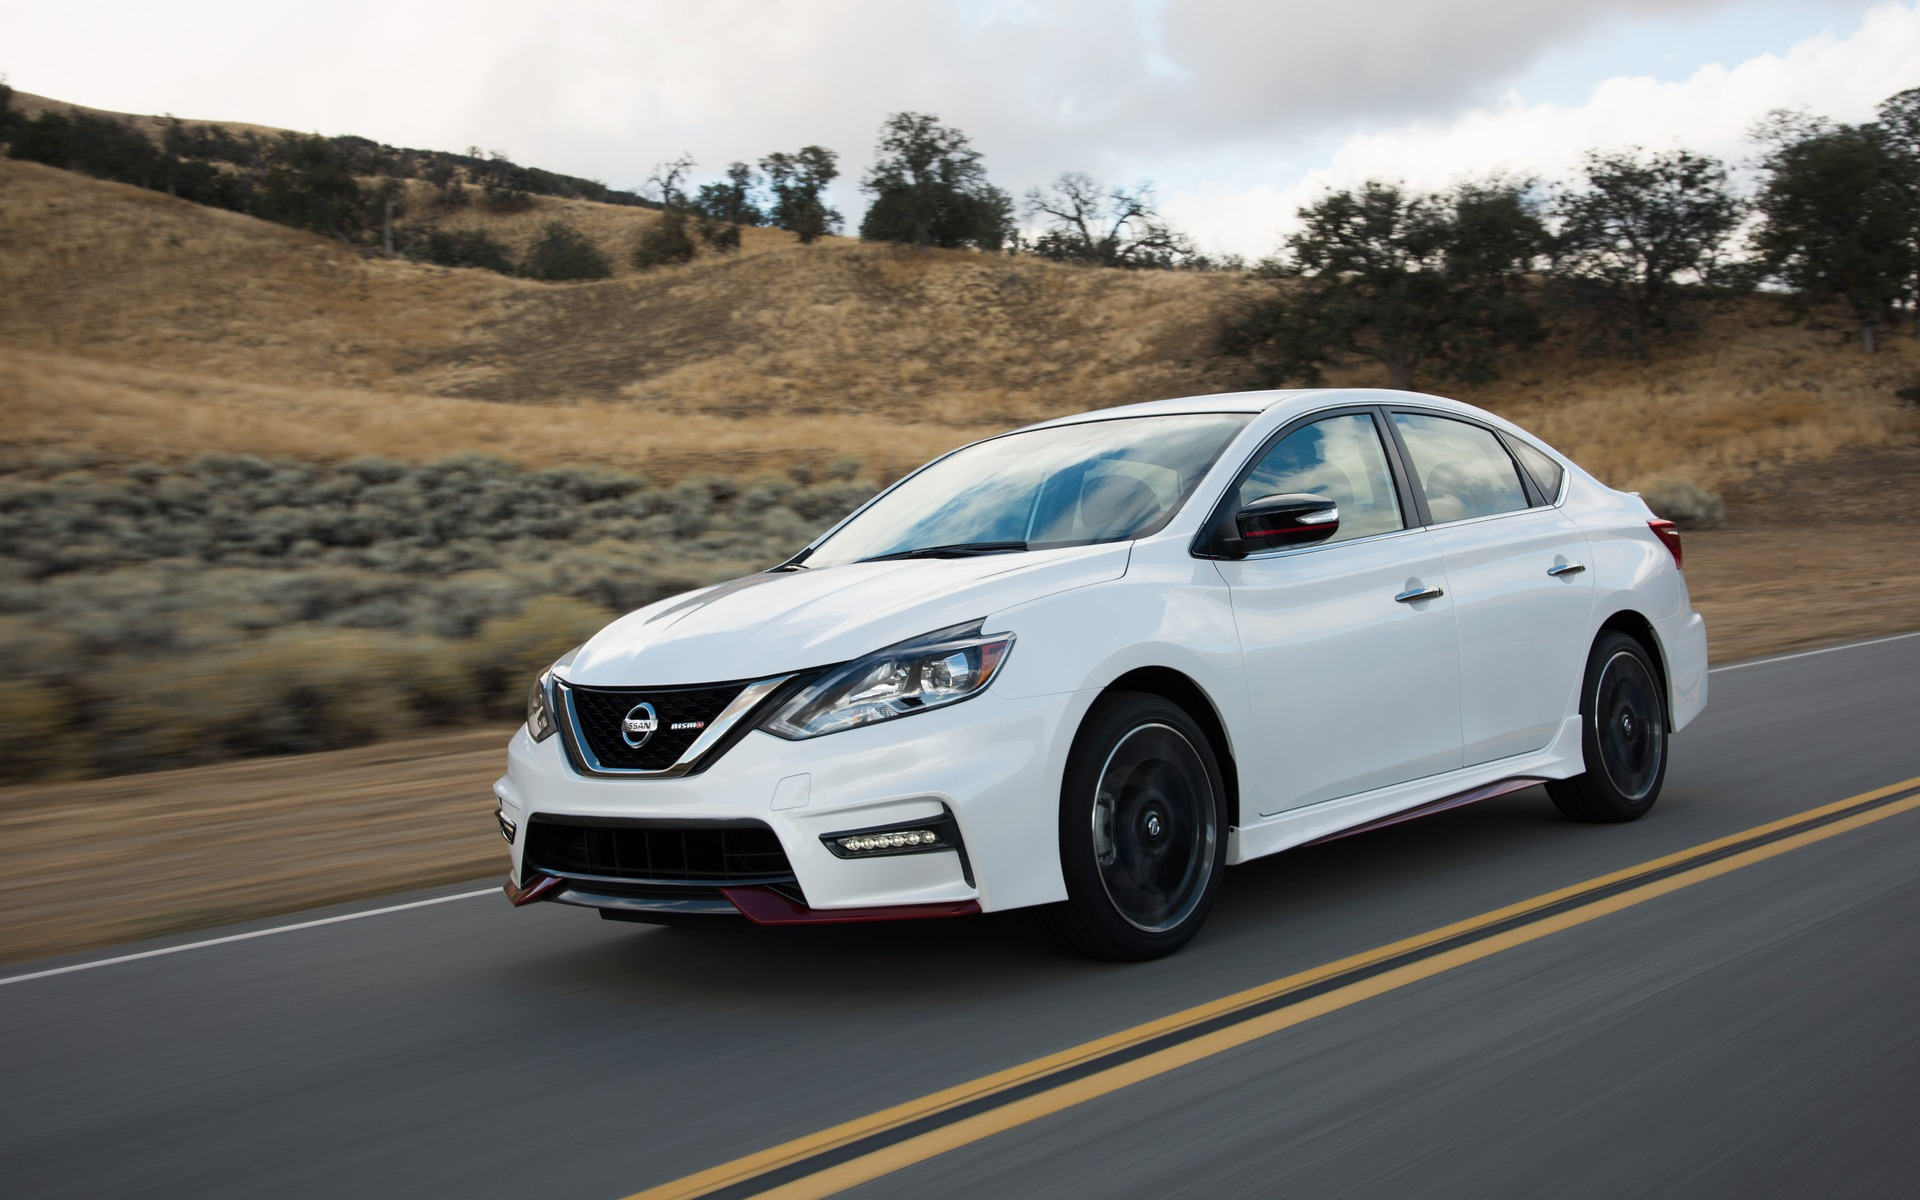 2018 Nissan Sentra S 18 Man Specifications  The Car Guide